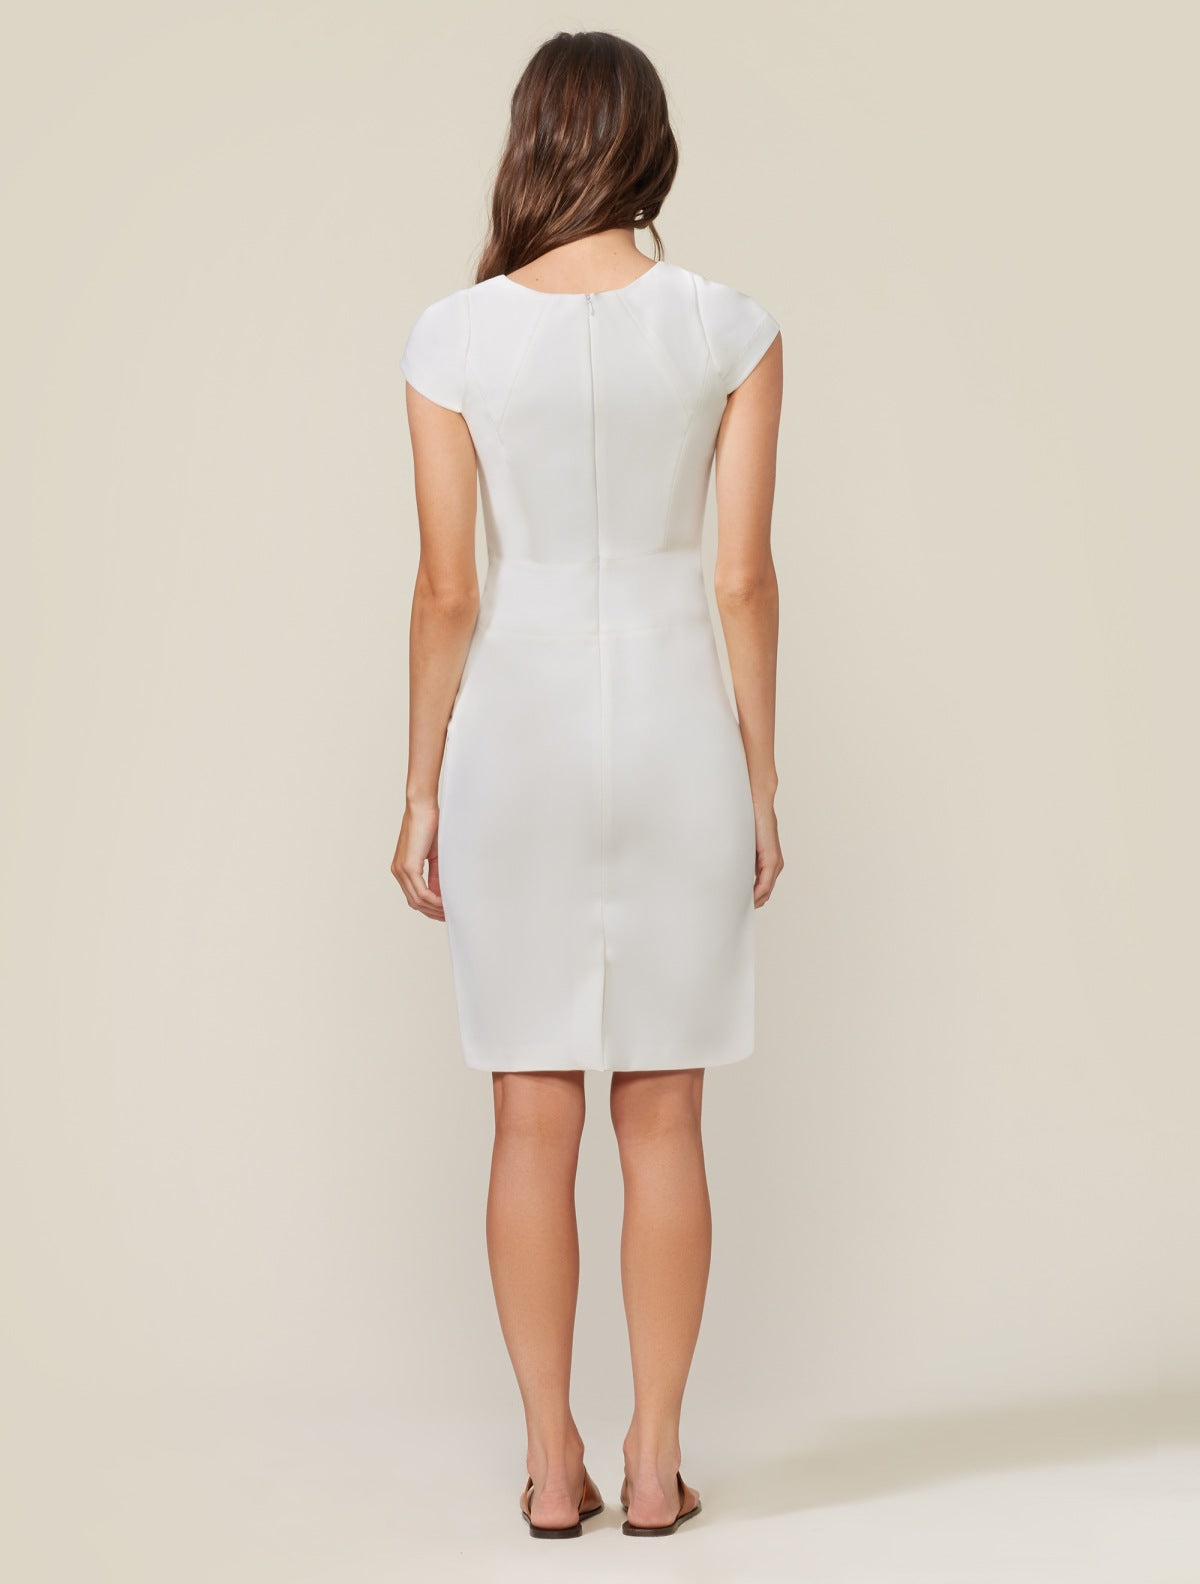 Cap Sleeve Sheath - Halston